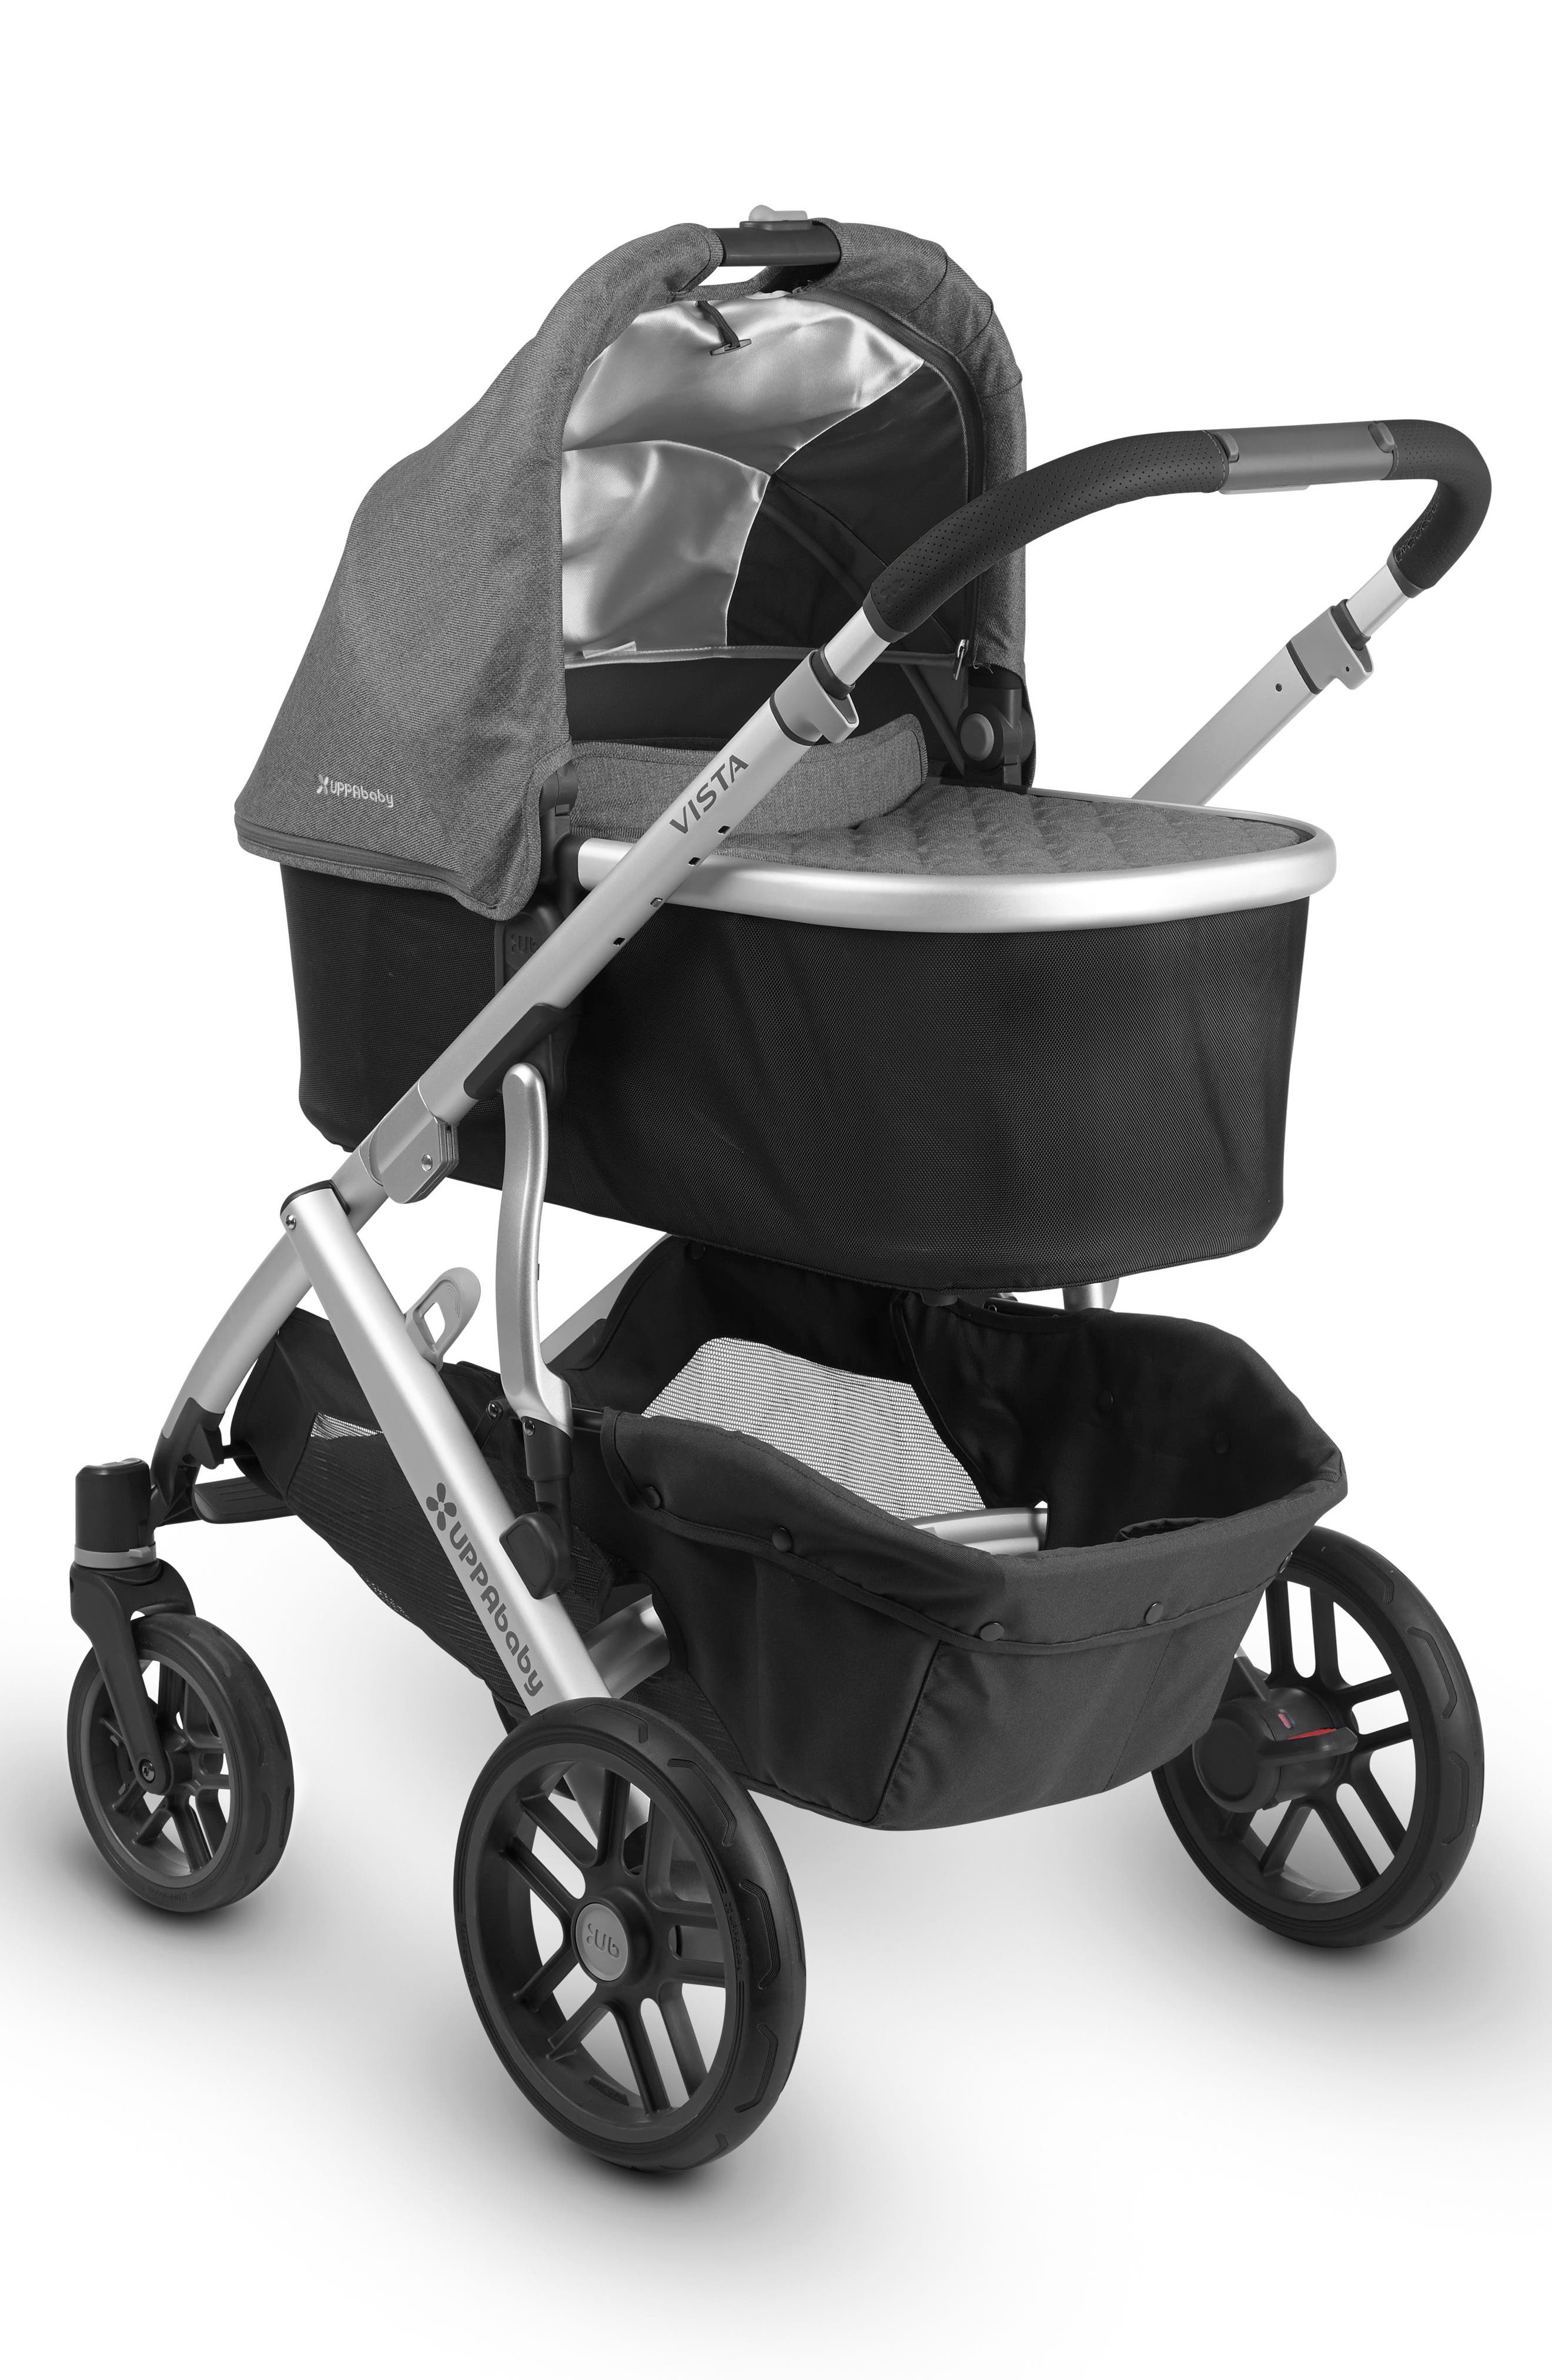 UPPABABY, 2018 VISTA Aluminum Frame Convertible Complete Stroller with Leather Trim, Alternate thumbnail 4, color, JORDAN CHARCOAL/ SILVER